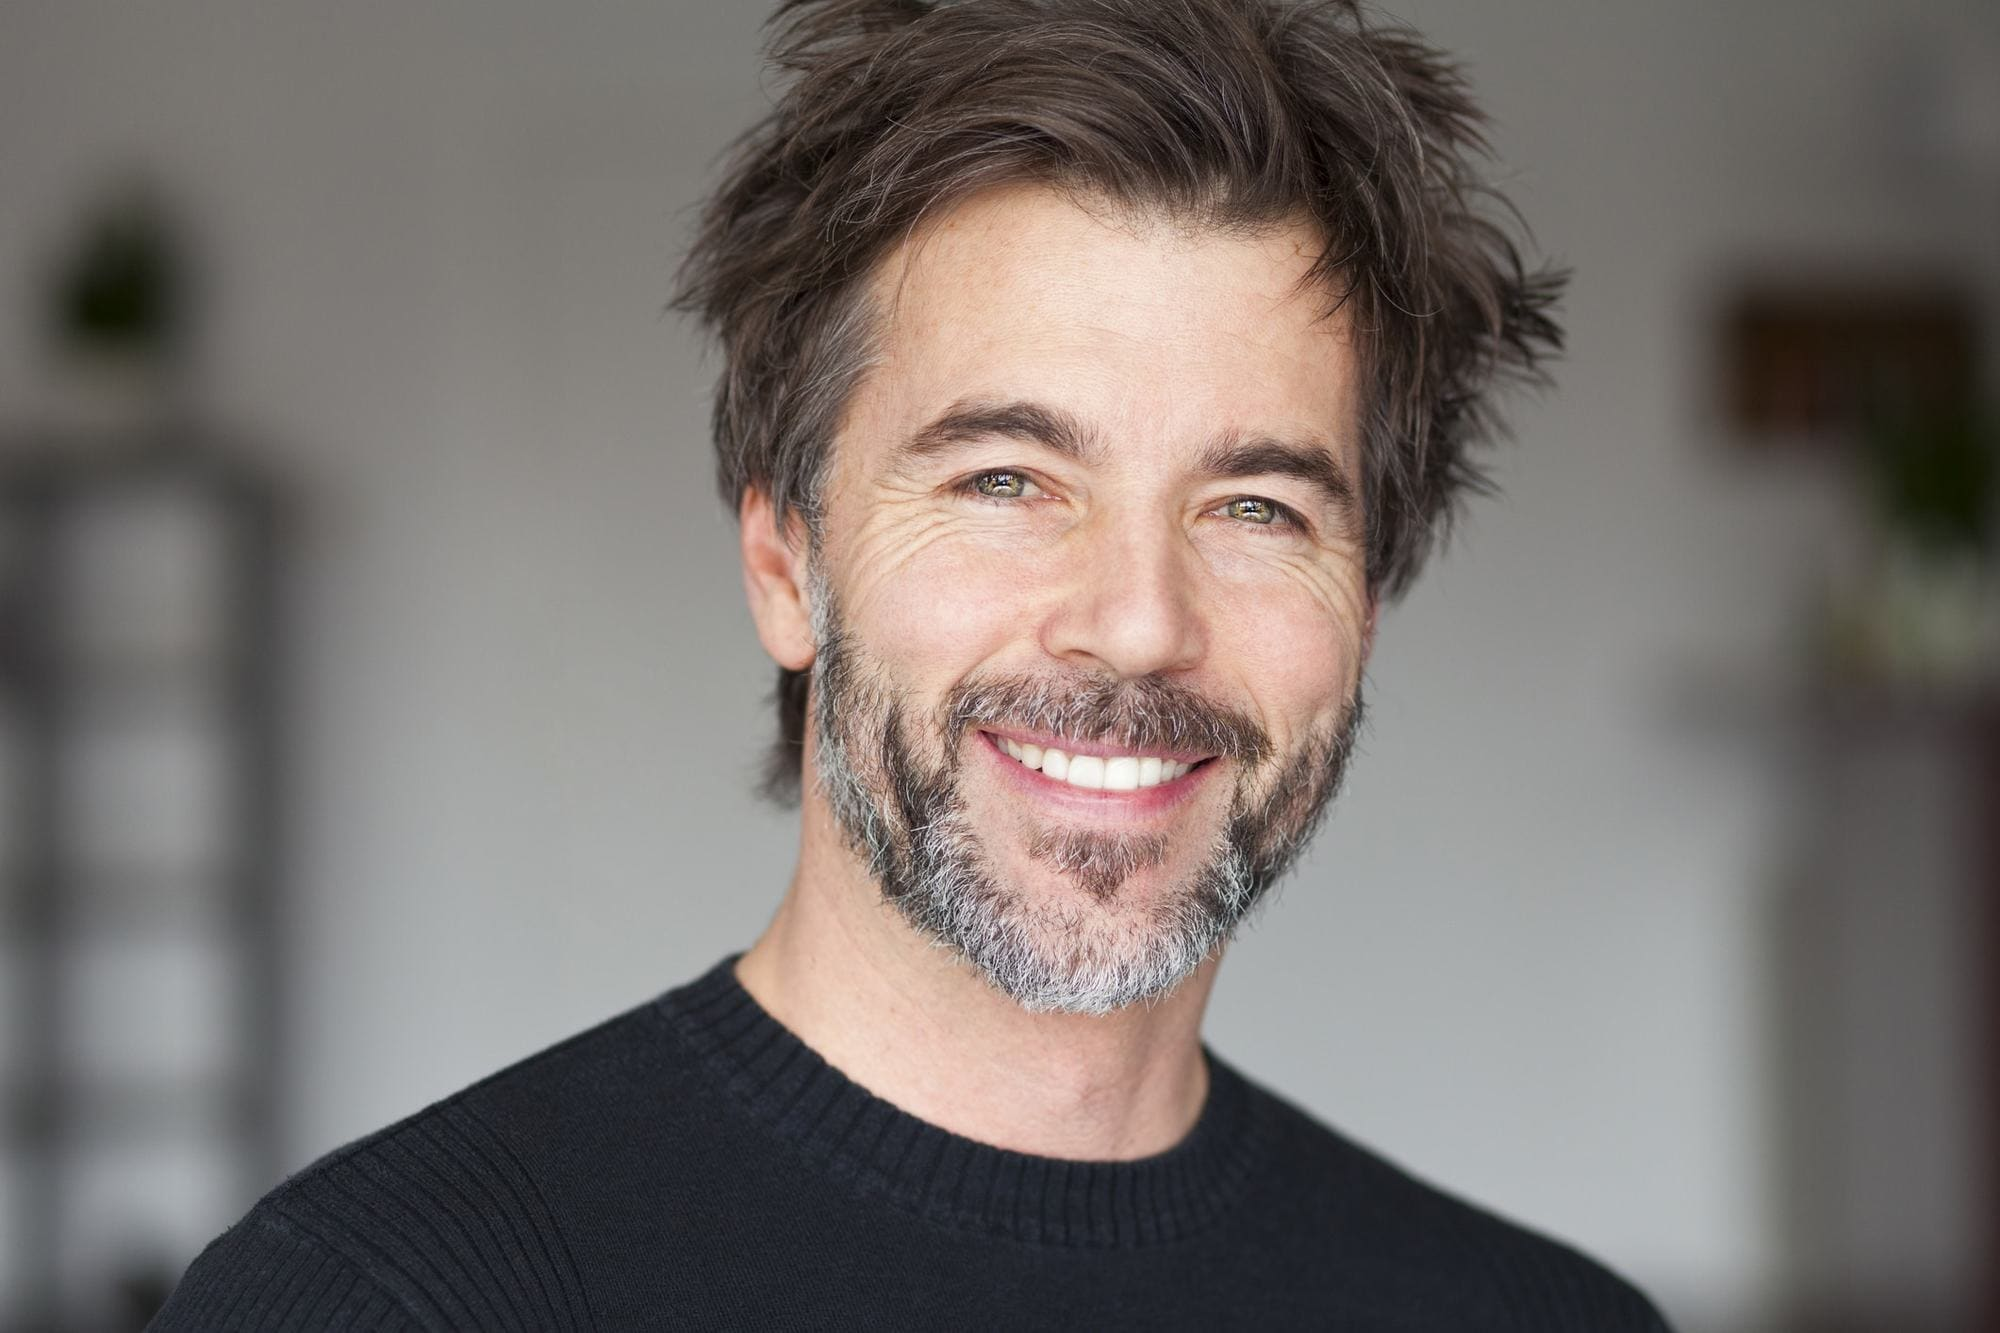 Hairstyles For Men Over 40 25 Timeless Styles To Try